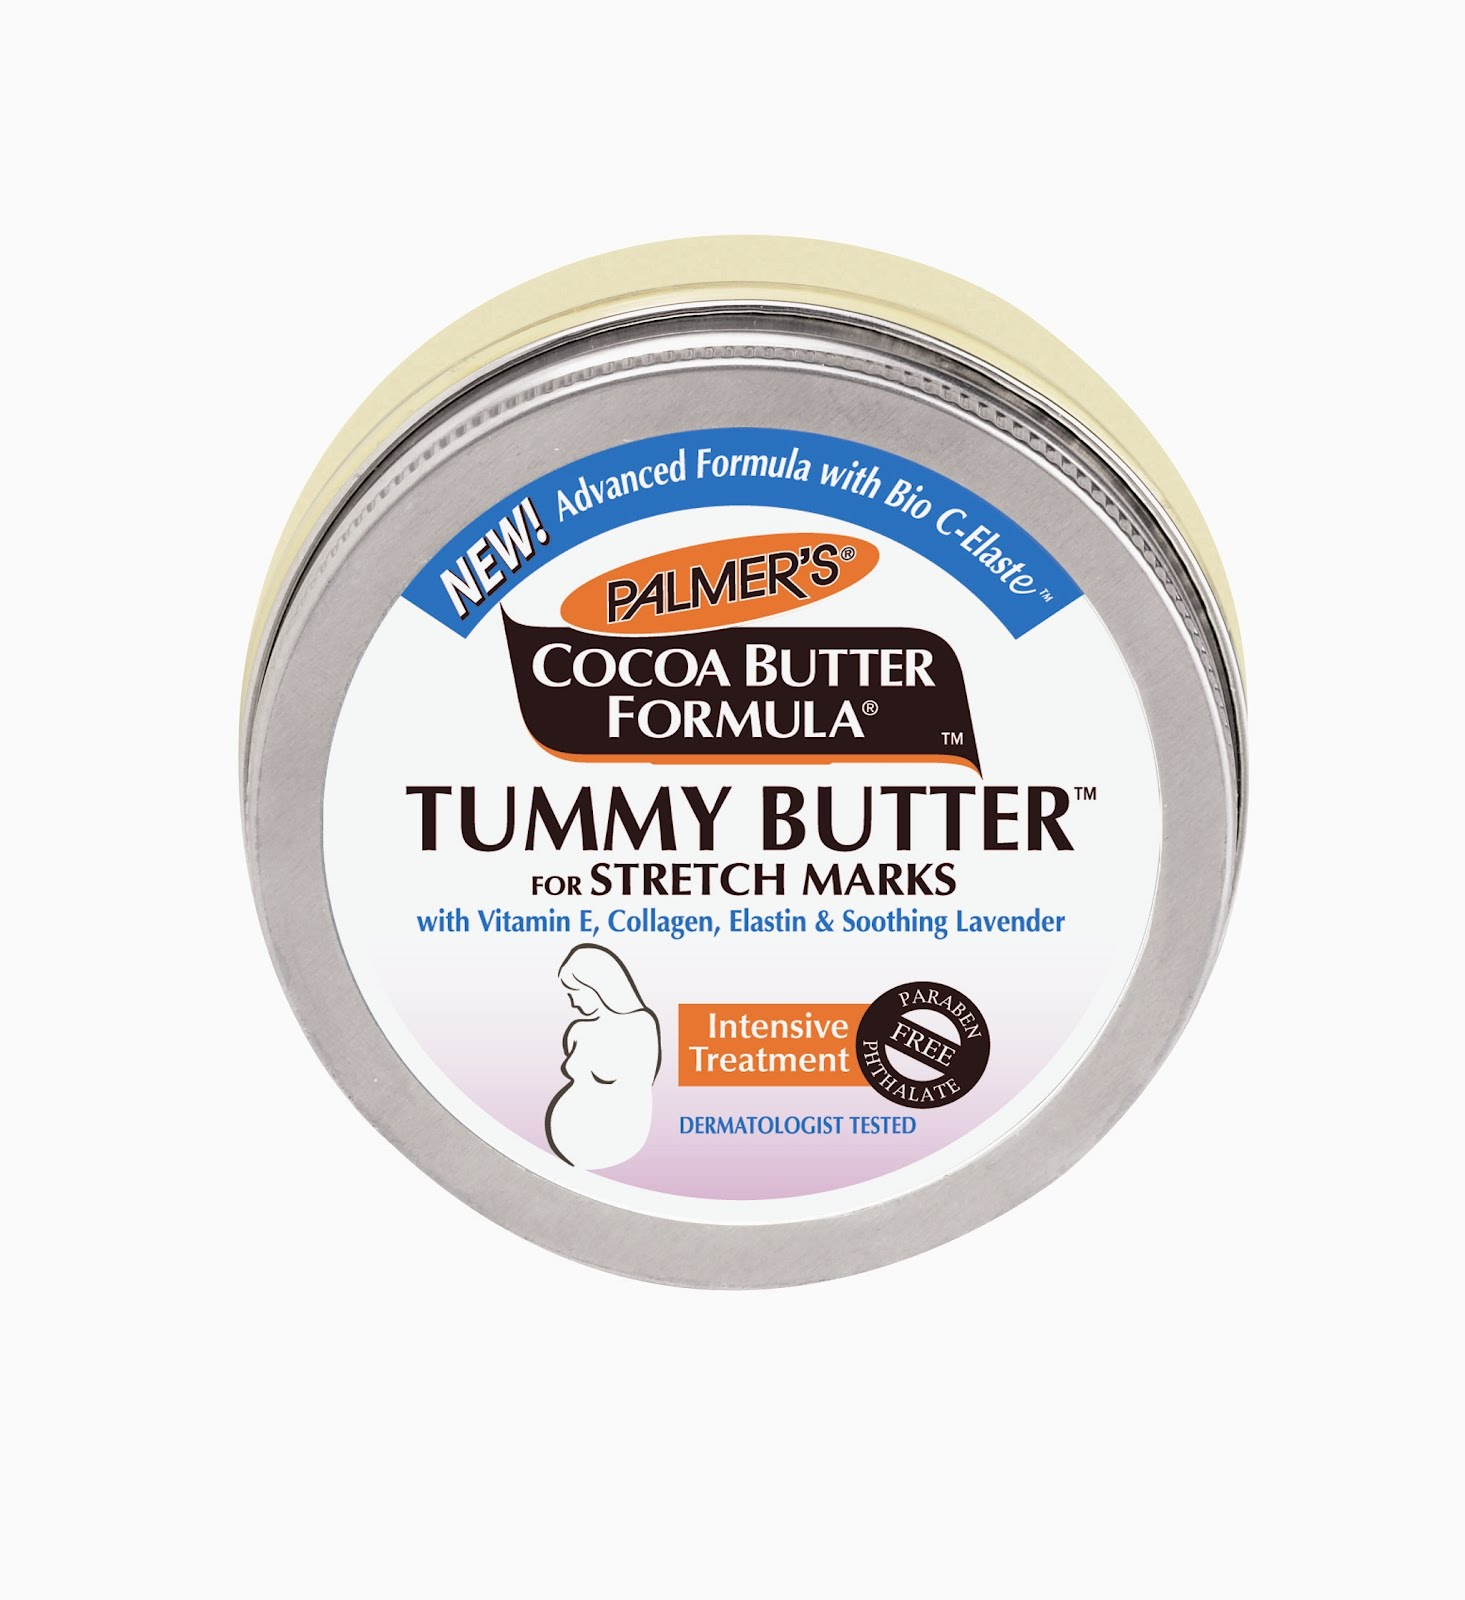 mellow mummy palmers tummy butter for stretch marks review taking life as it comes